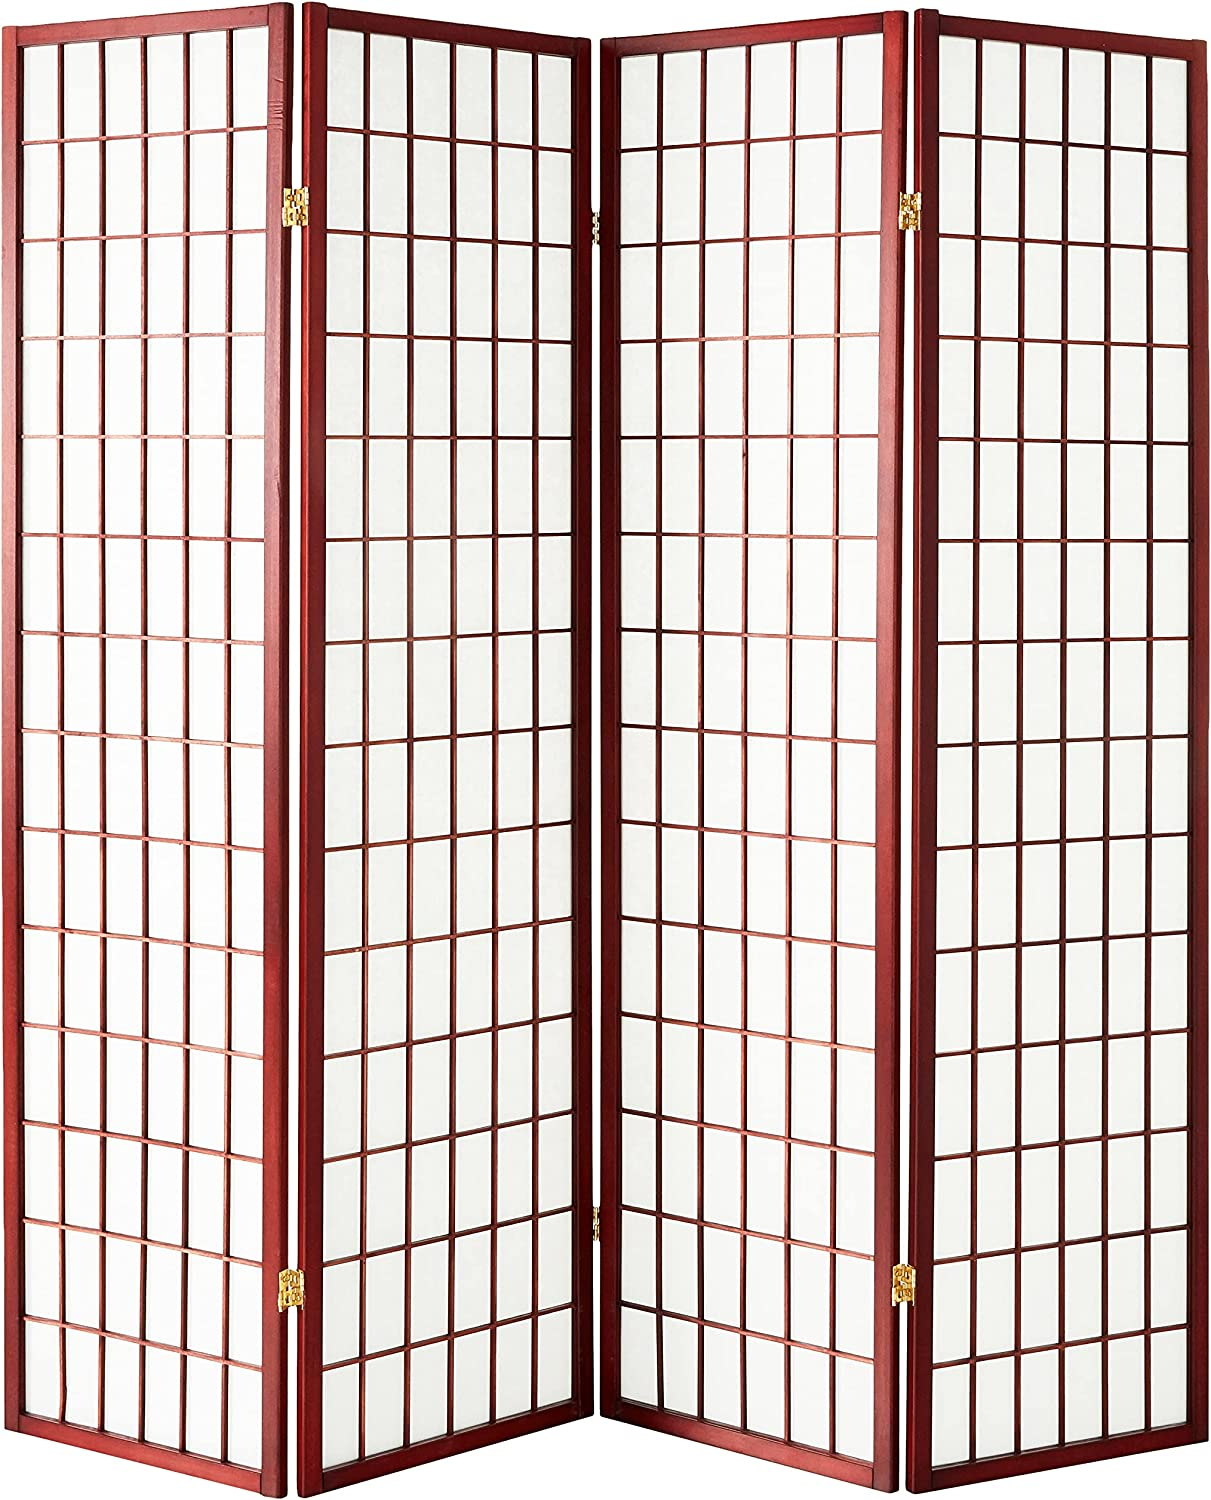 ORE High quality new International 4-Panel Room Ranking TOP5 Divider Cherry